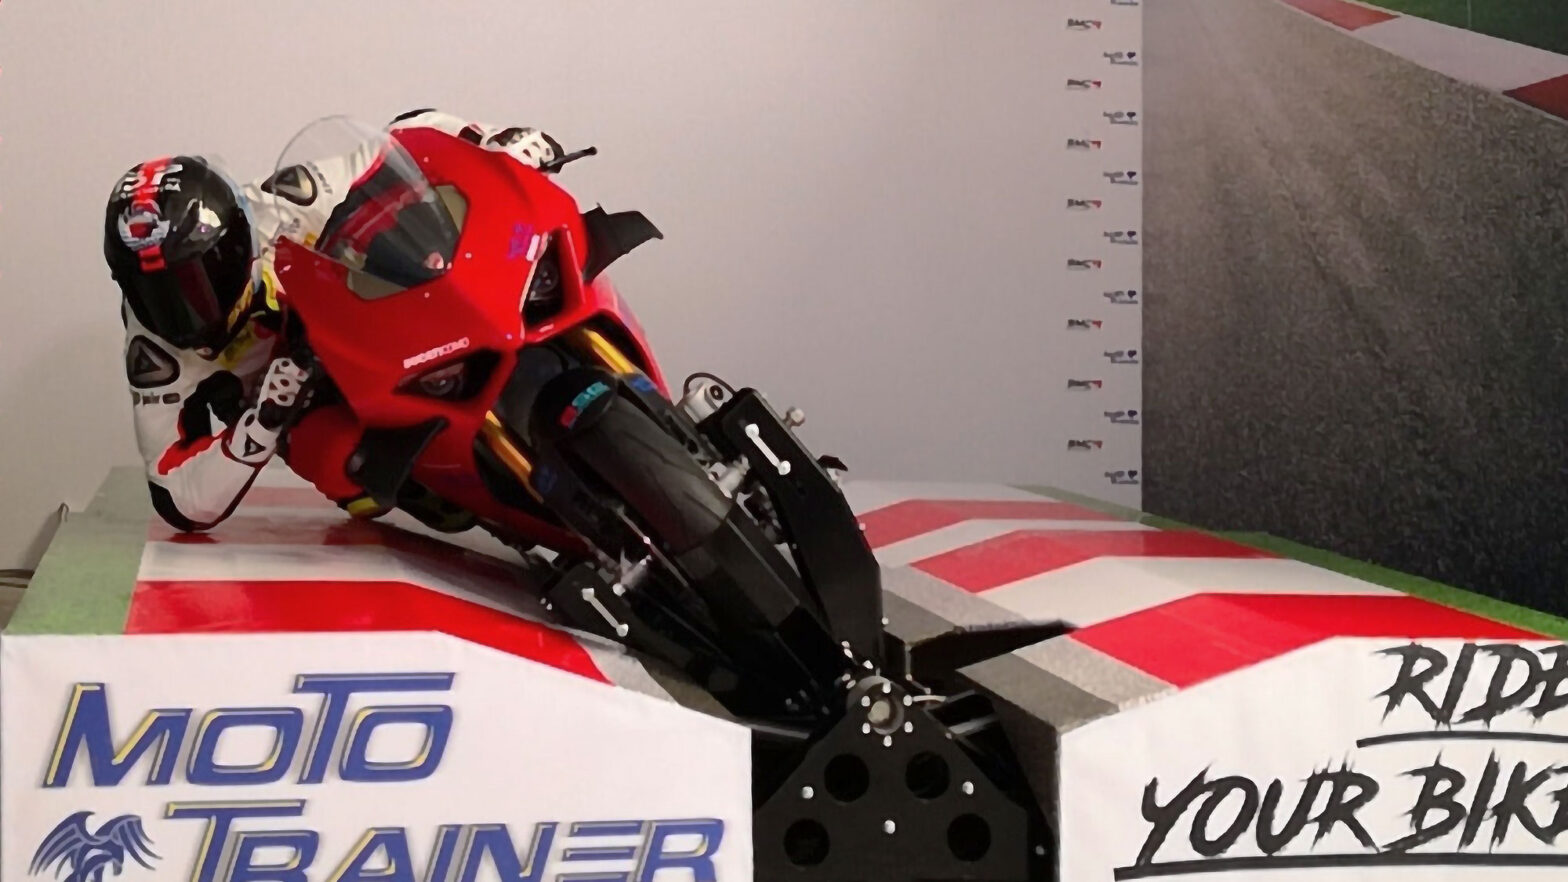 Moto Trainer Motorcycle Simulator